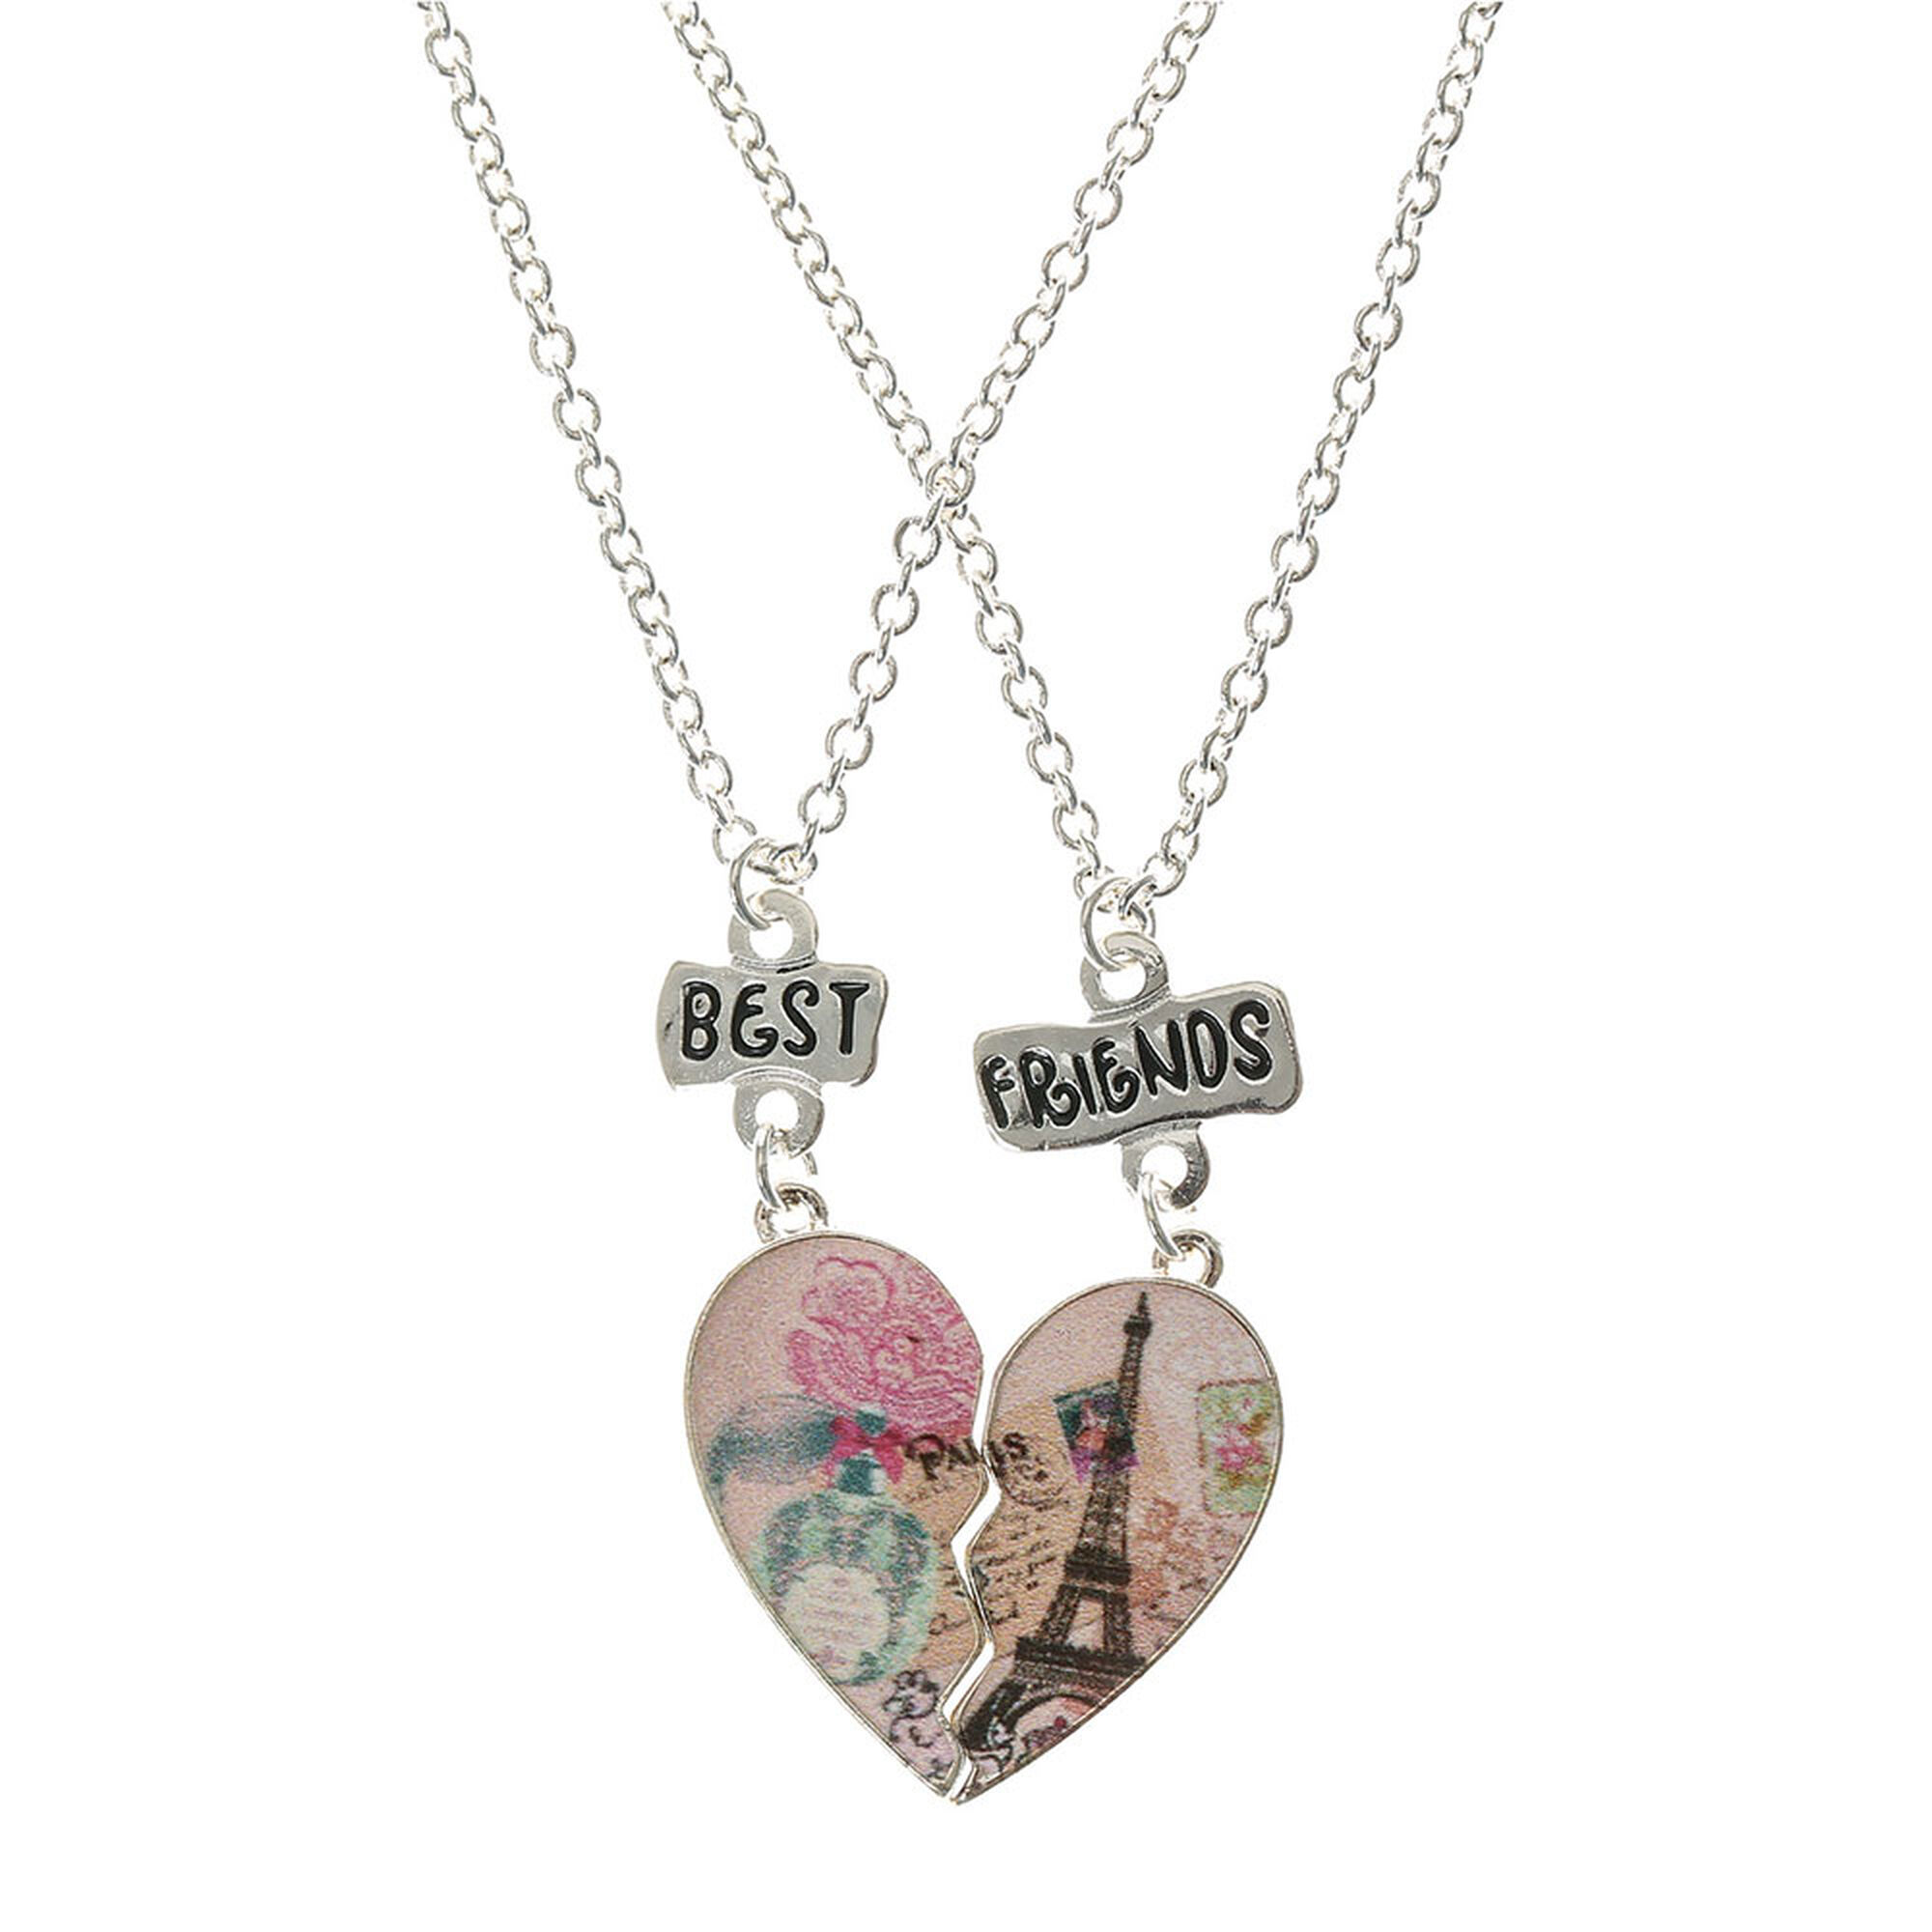 Best Friends Friendship Necklaces